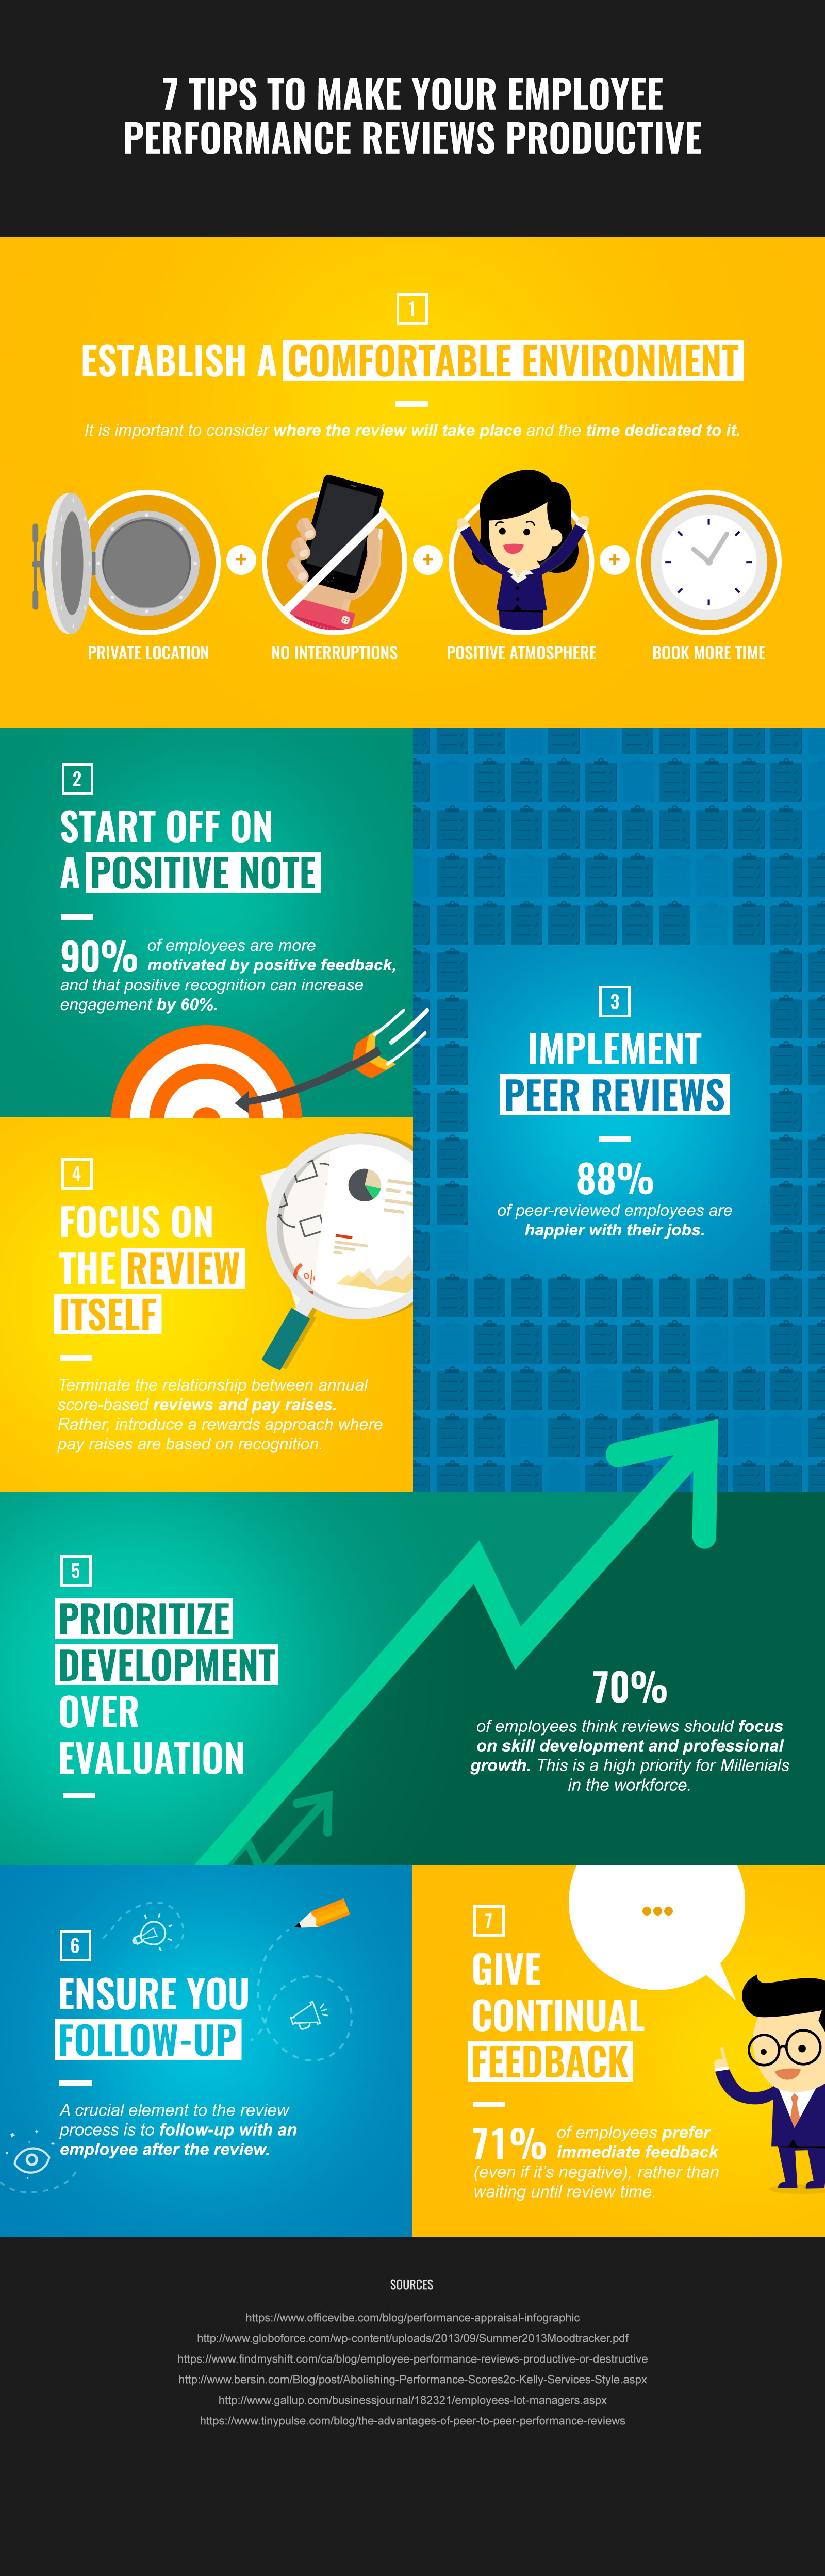 7 tips to make your employee reviews productive